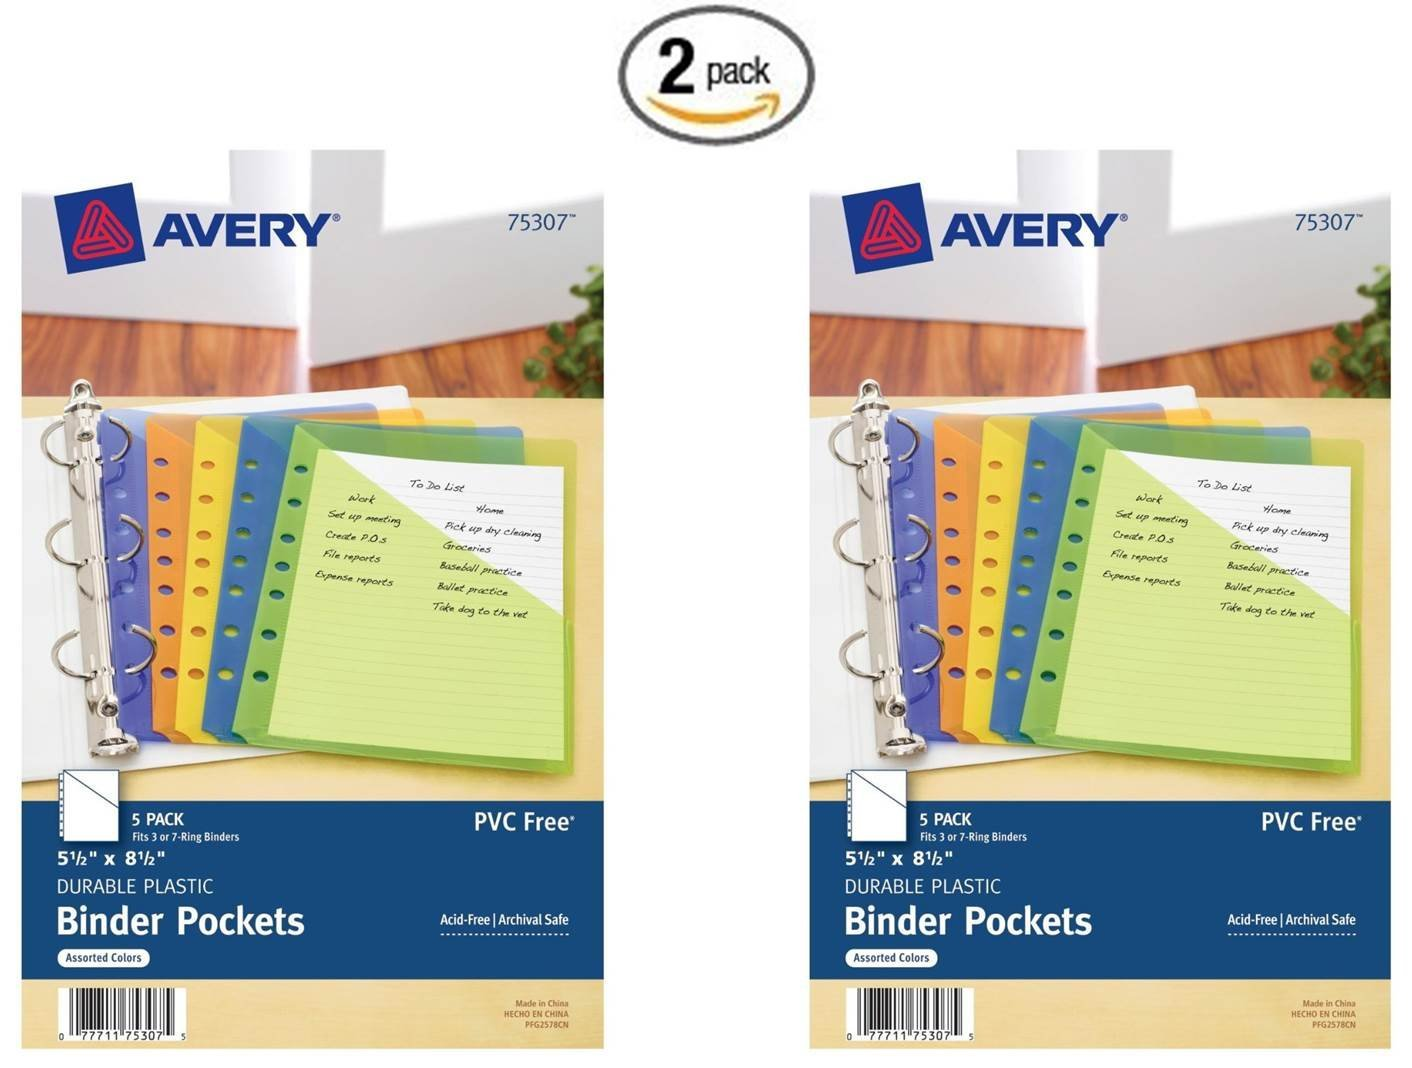 Avery Mini Binder Pockets, Fits 3-Ring and 7-Ring Binders, Assorted, Pack of 5 (75307) (2 Pack)